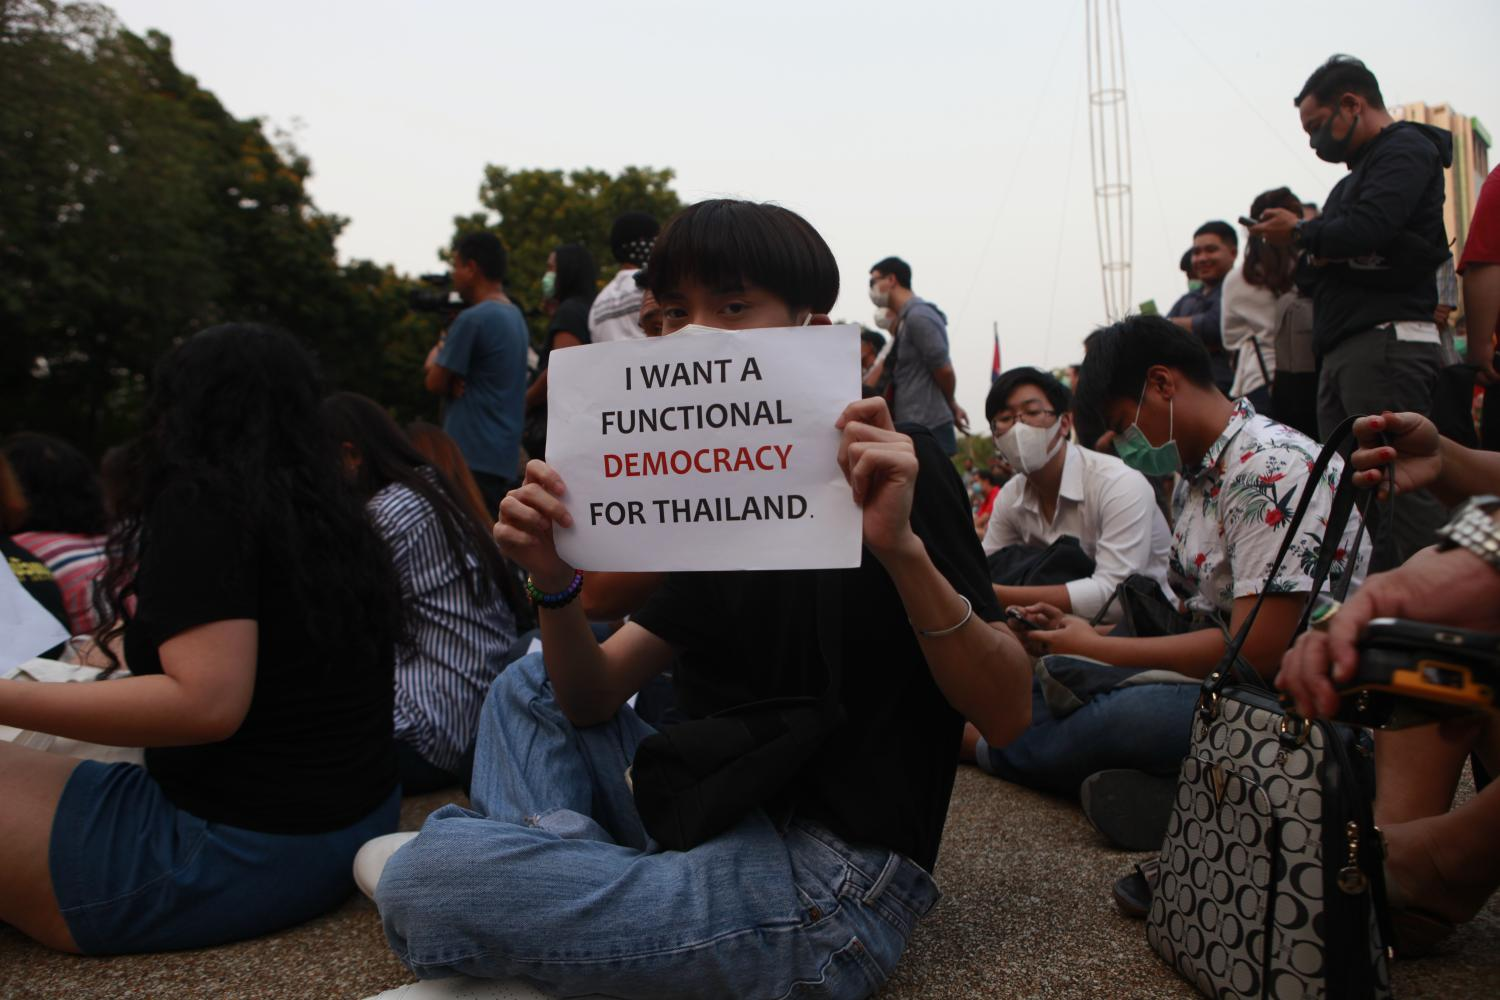 In this Feb 29 file photo, a student raises a pro-democracy placard during a rally at Kasetsart University.Nutthawat Wicheanbut